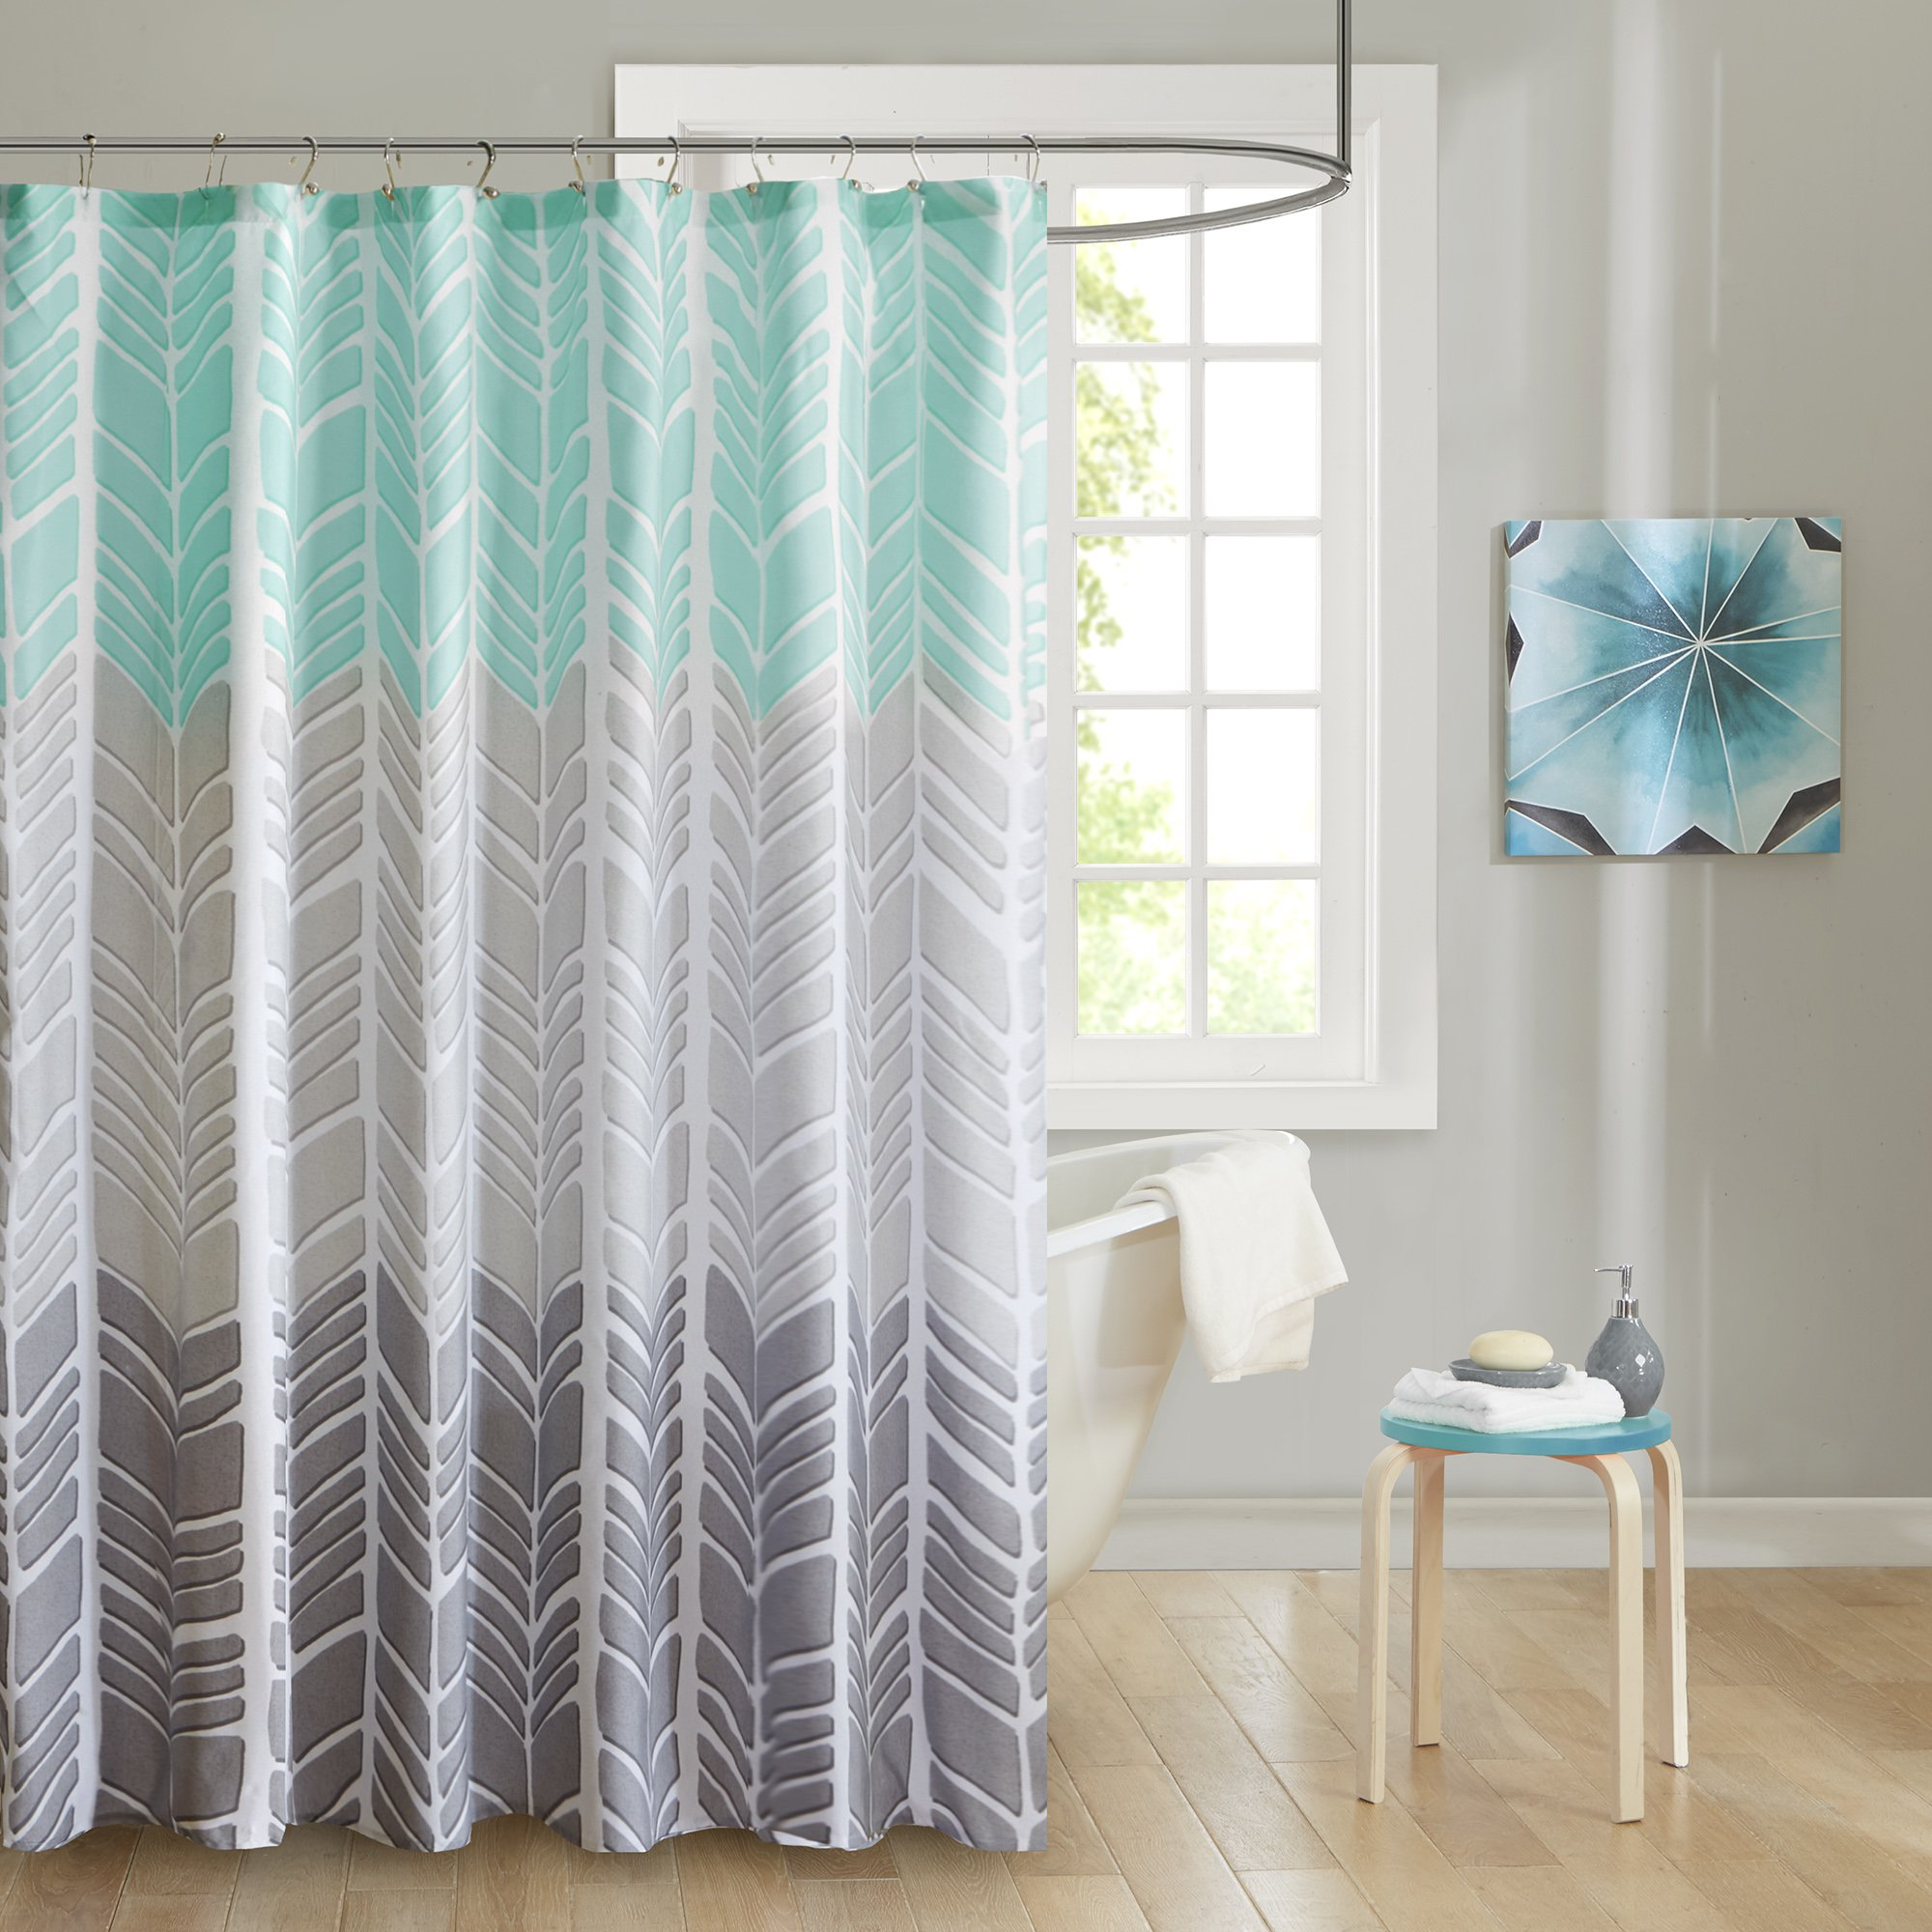 Decorations Cute Bathroom Decor Ideas With Shower Curtains With with regard to proportions 2000 X 2000